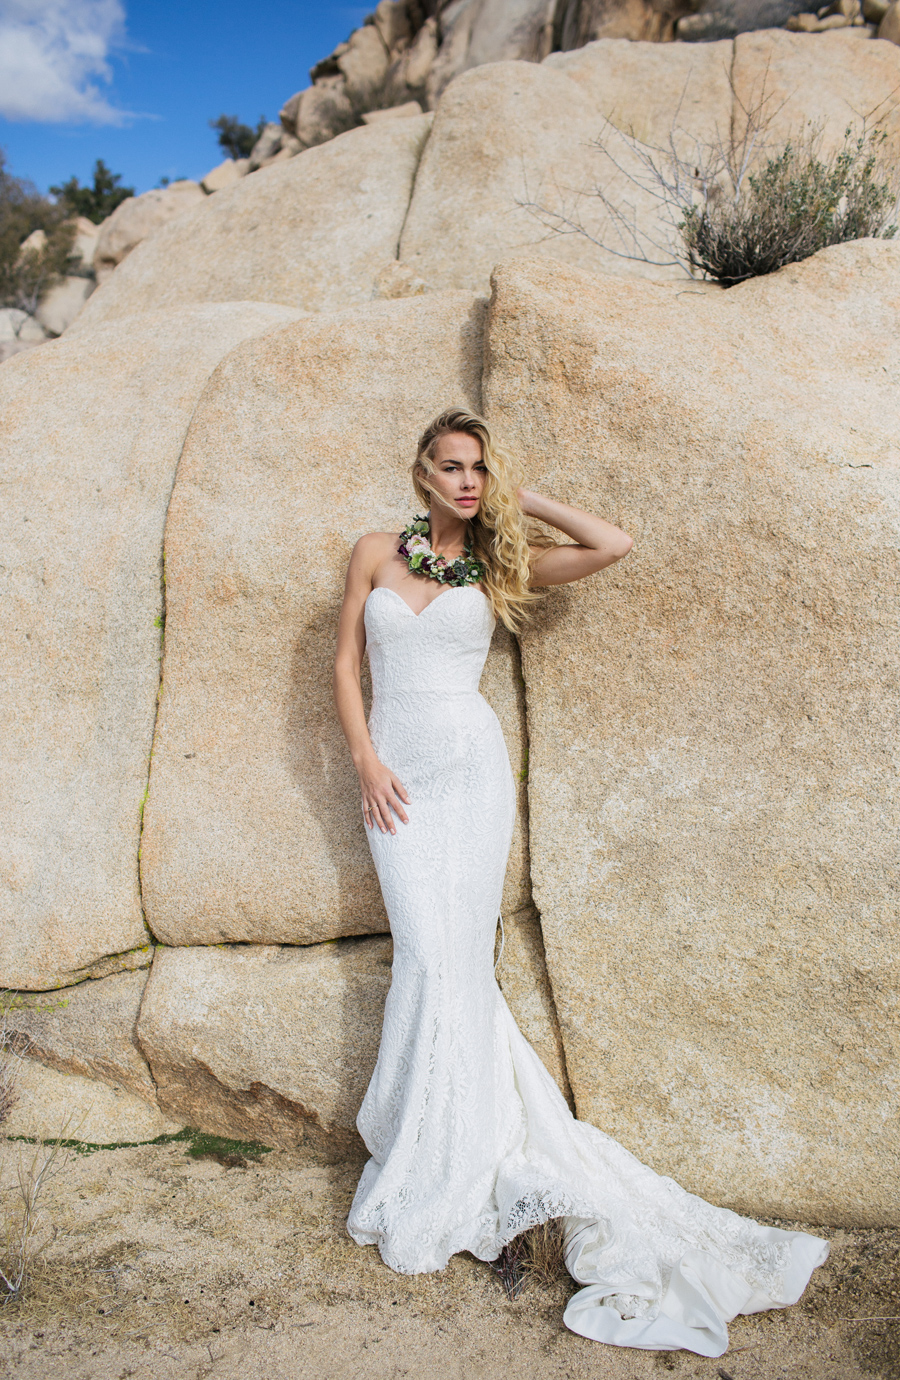 Destination Wedding ideas / Photography: Kacie Q. Photography / Styling + Planning: Katalin Green / Swimwear: Nicolita Swimwear / Location: Joshua Tree National Park / Necklace: Mountainside Designs / Ring: Fly Free Designs / Headpiece: Jennifer Behr / Flowers: Katalin Green + Mac's Floral